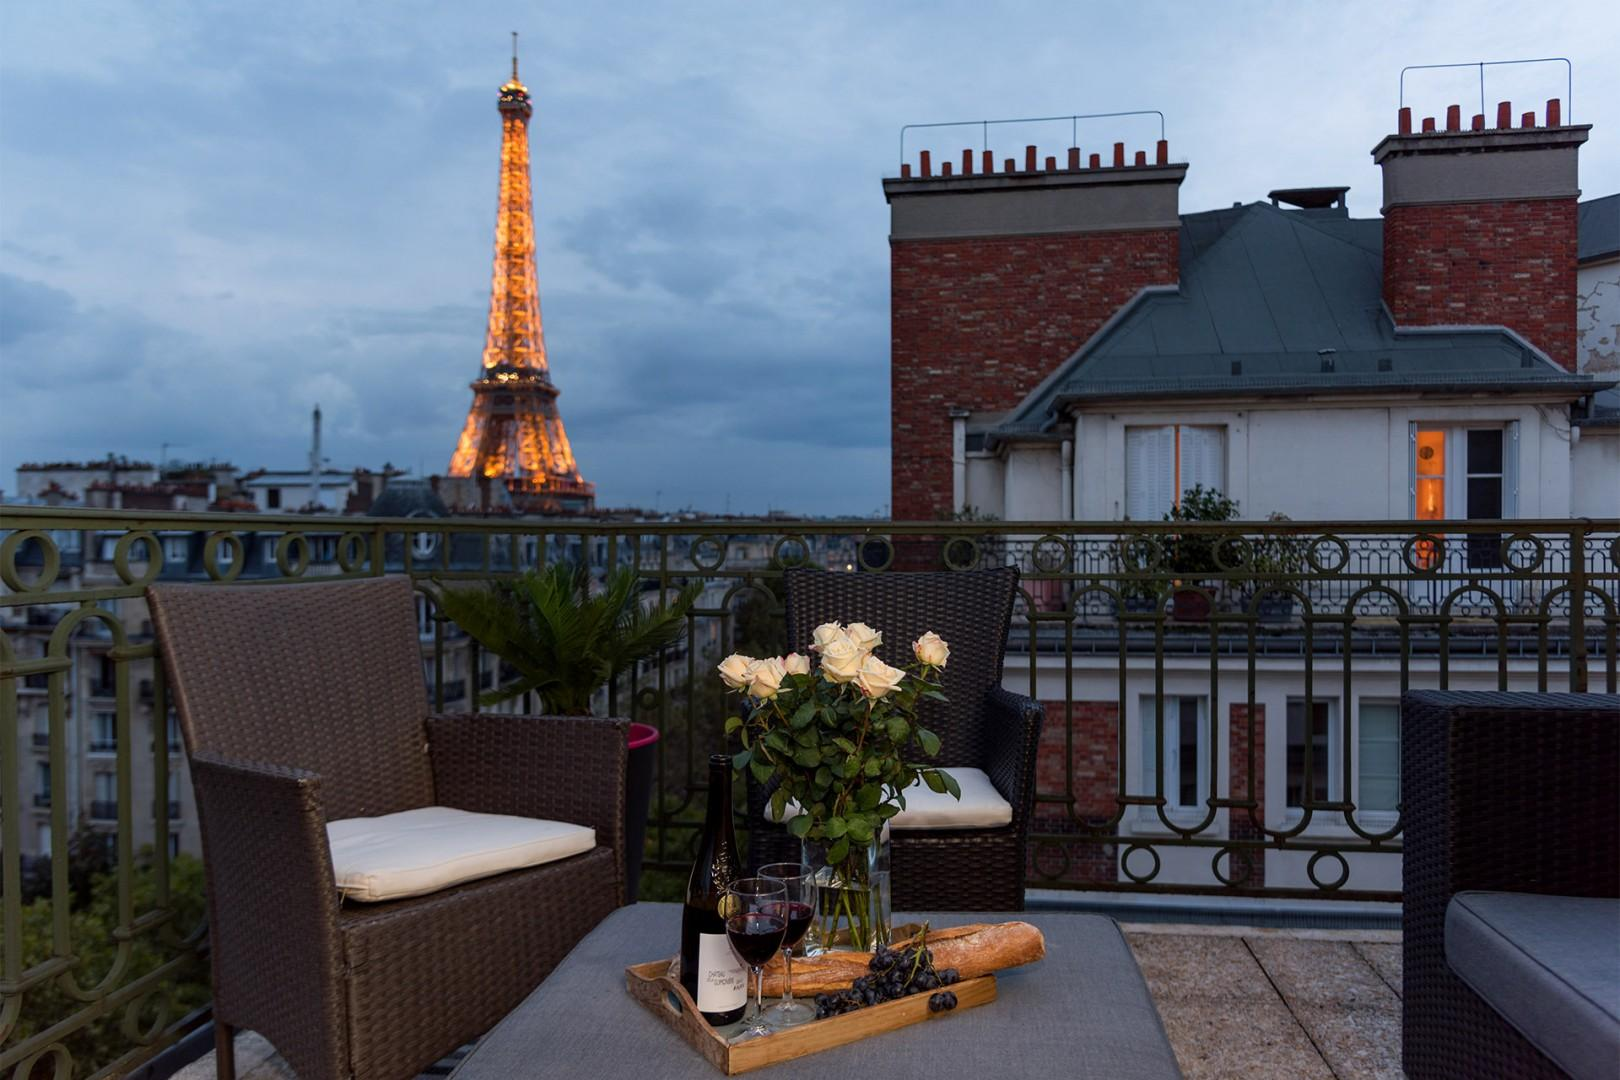 Enjoy amazing Eiffel Tower views right from your balcony.